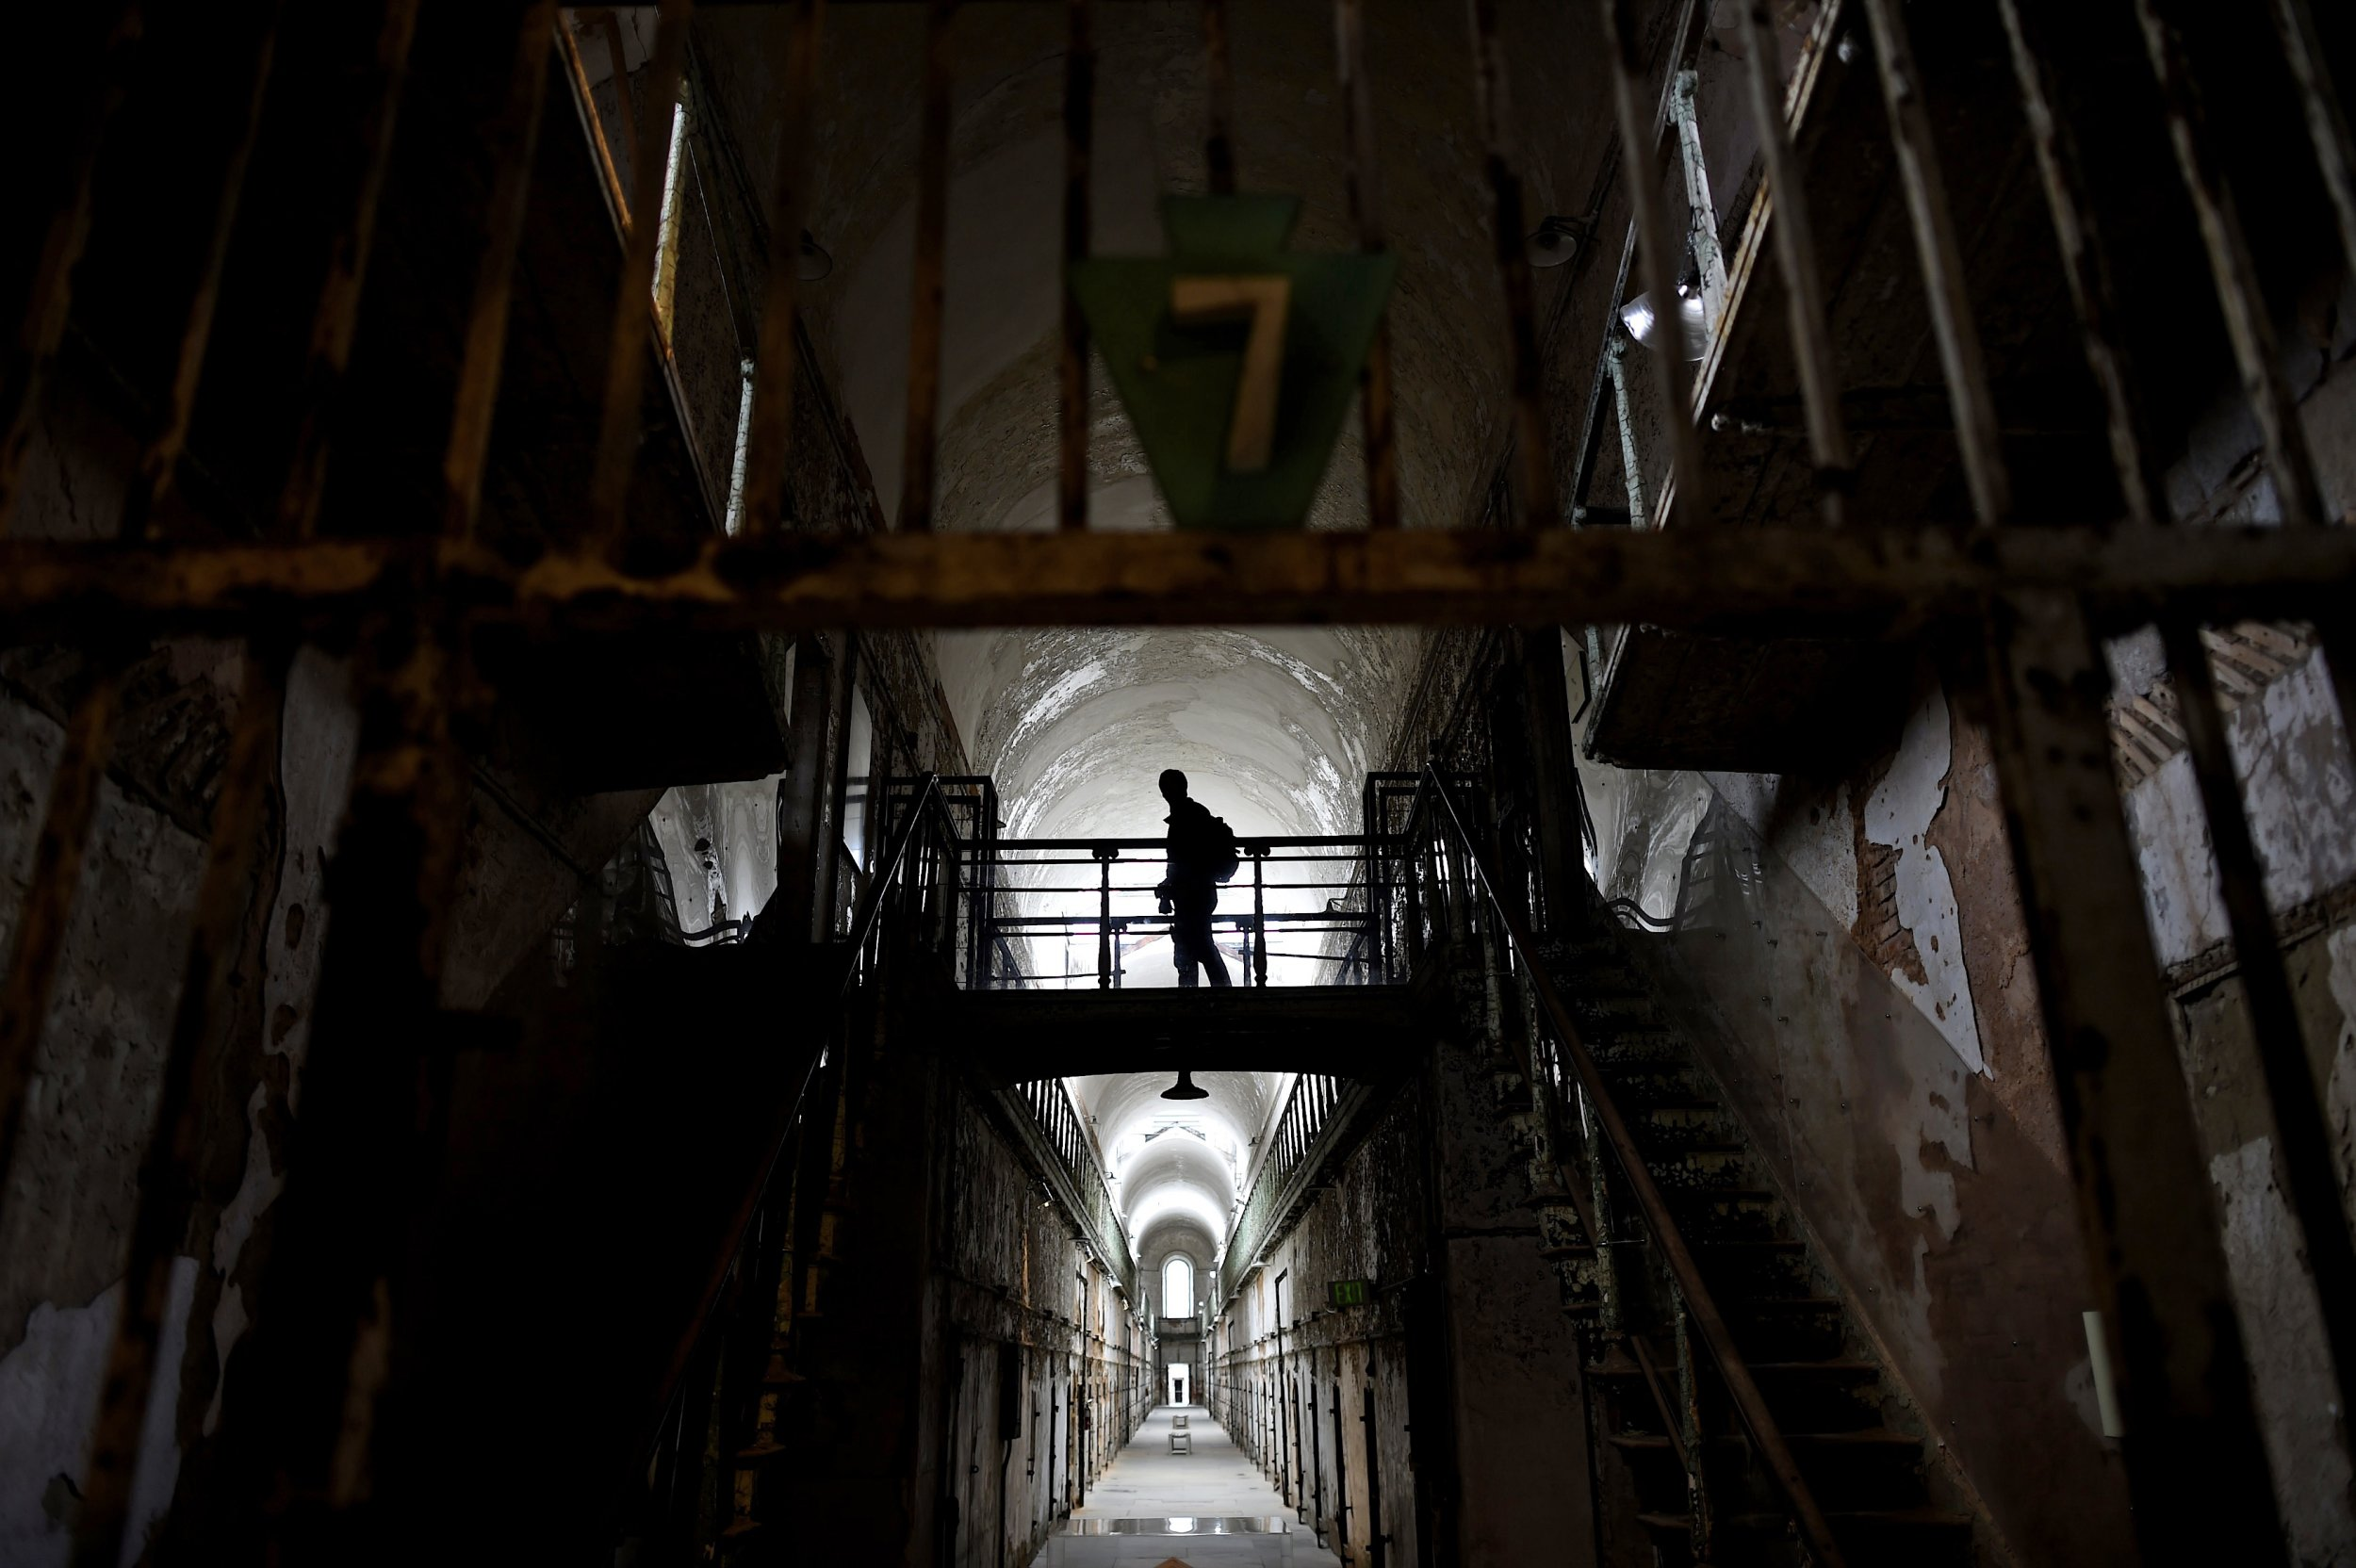 09_23_PhillyPrison_01